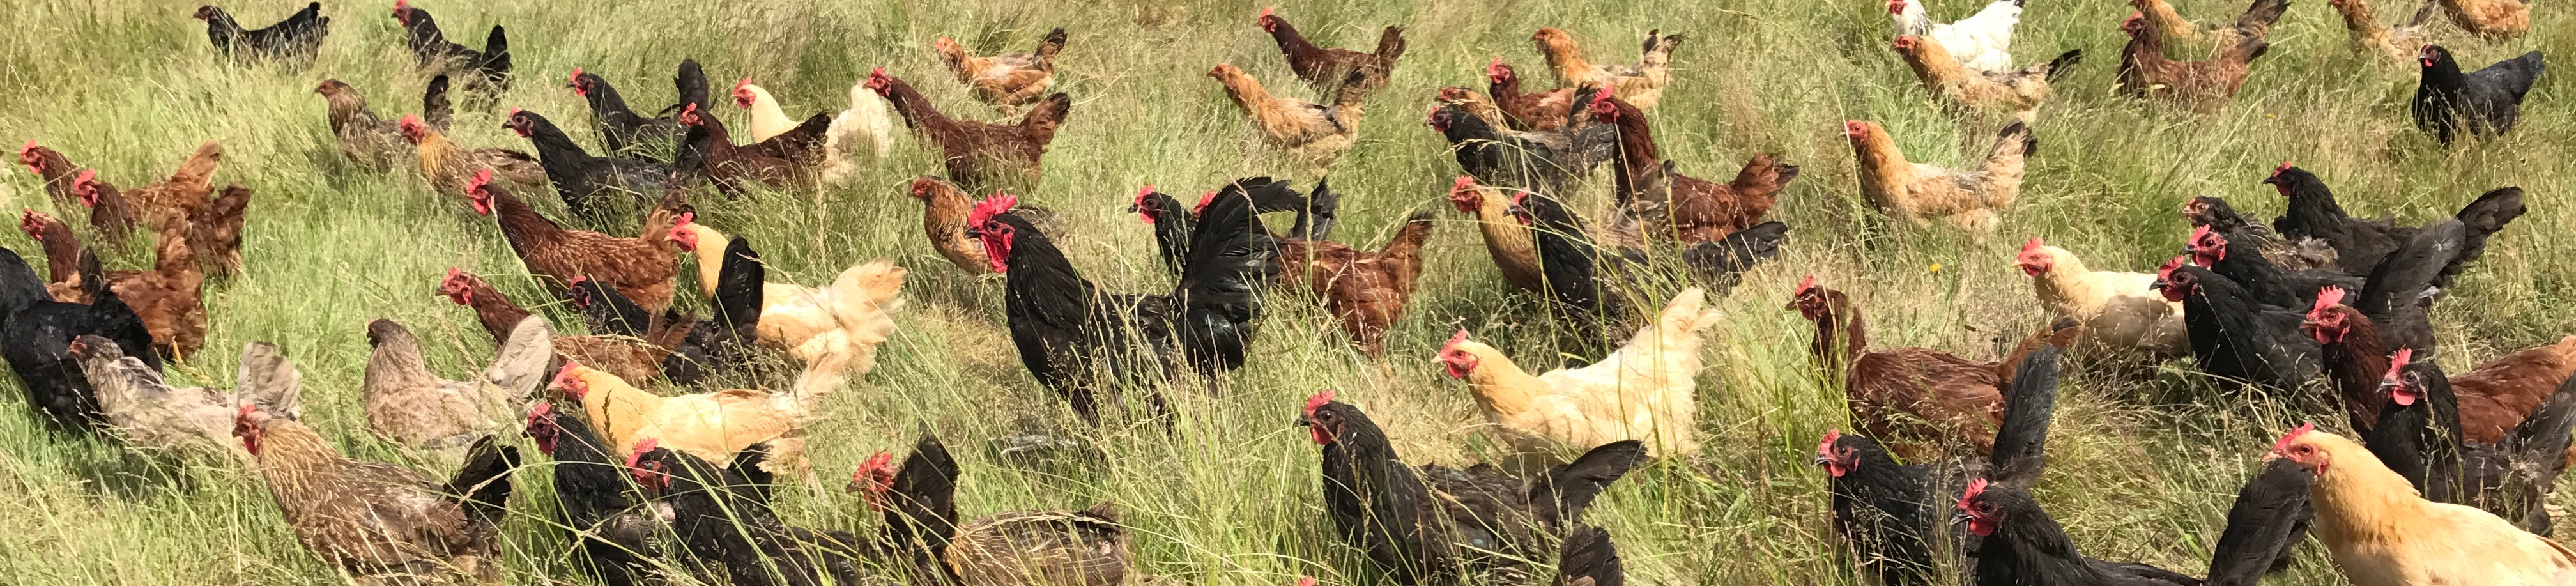 InFARMation September 25: Pasture-raised Poultry